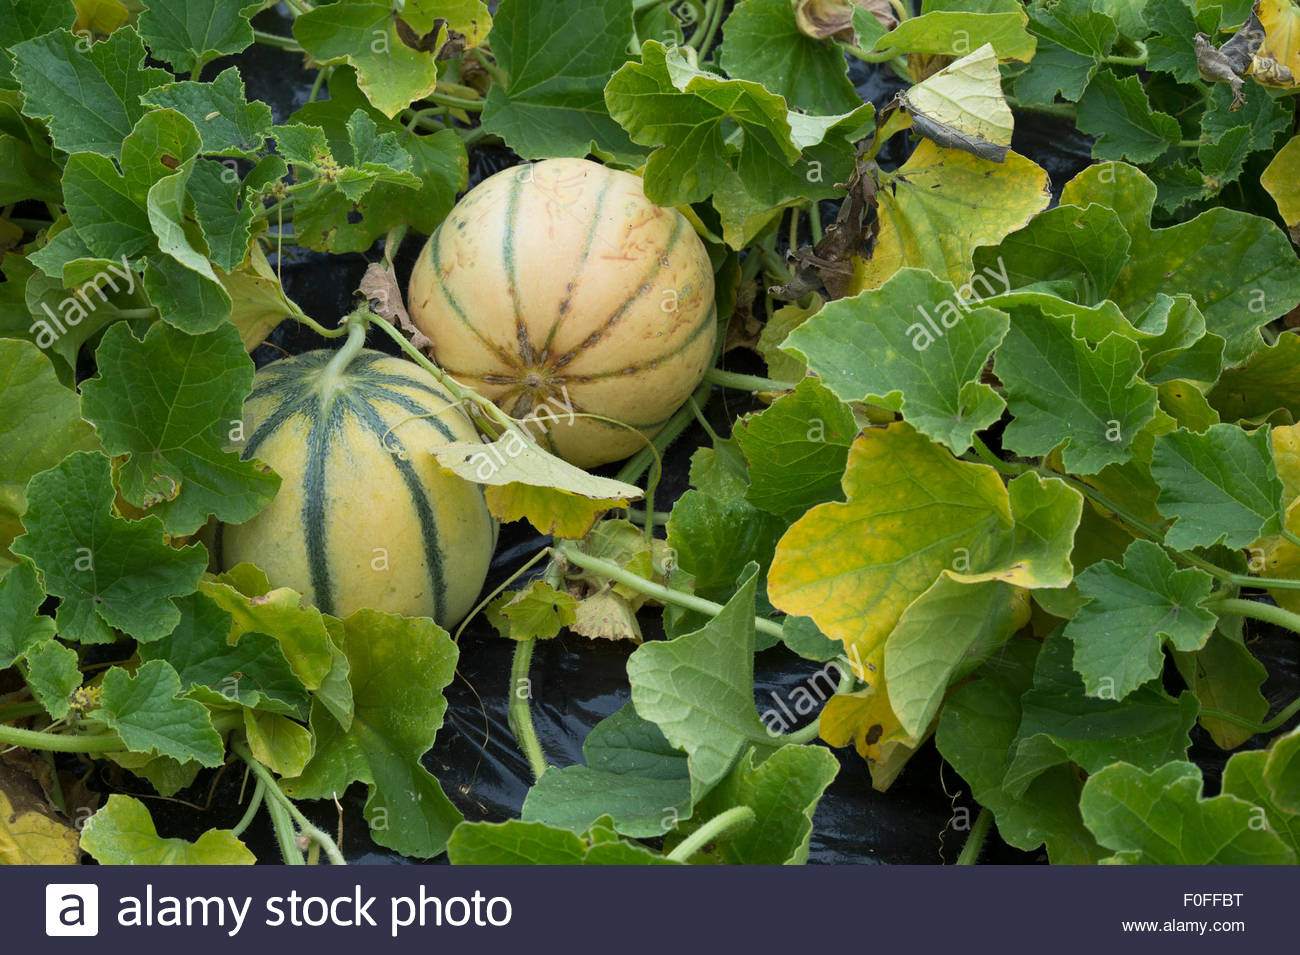 Forum on this topic: How to Ripen a Cantaloupe, how-to-ripen-a-cantaloupe/